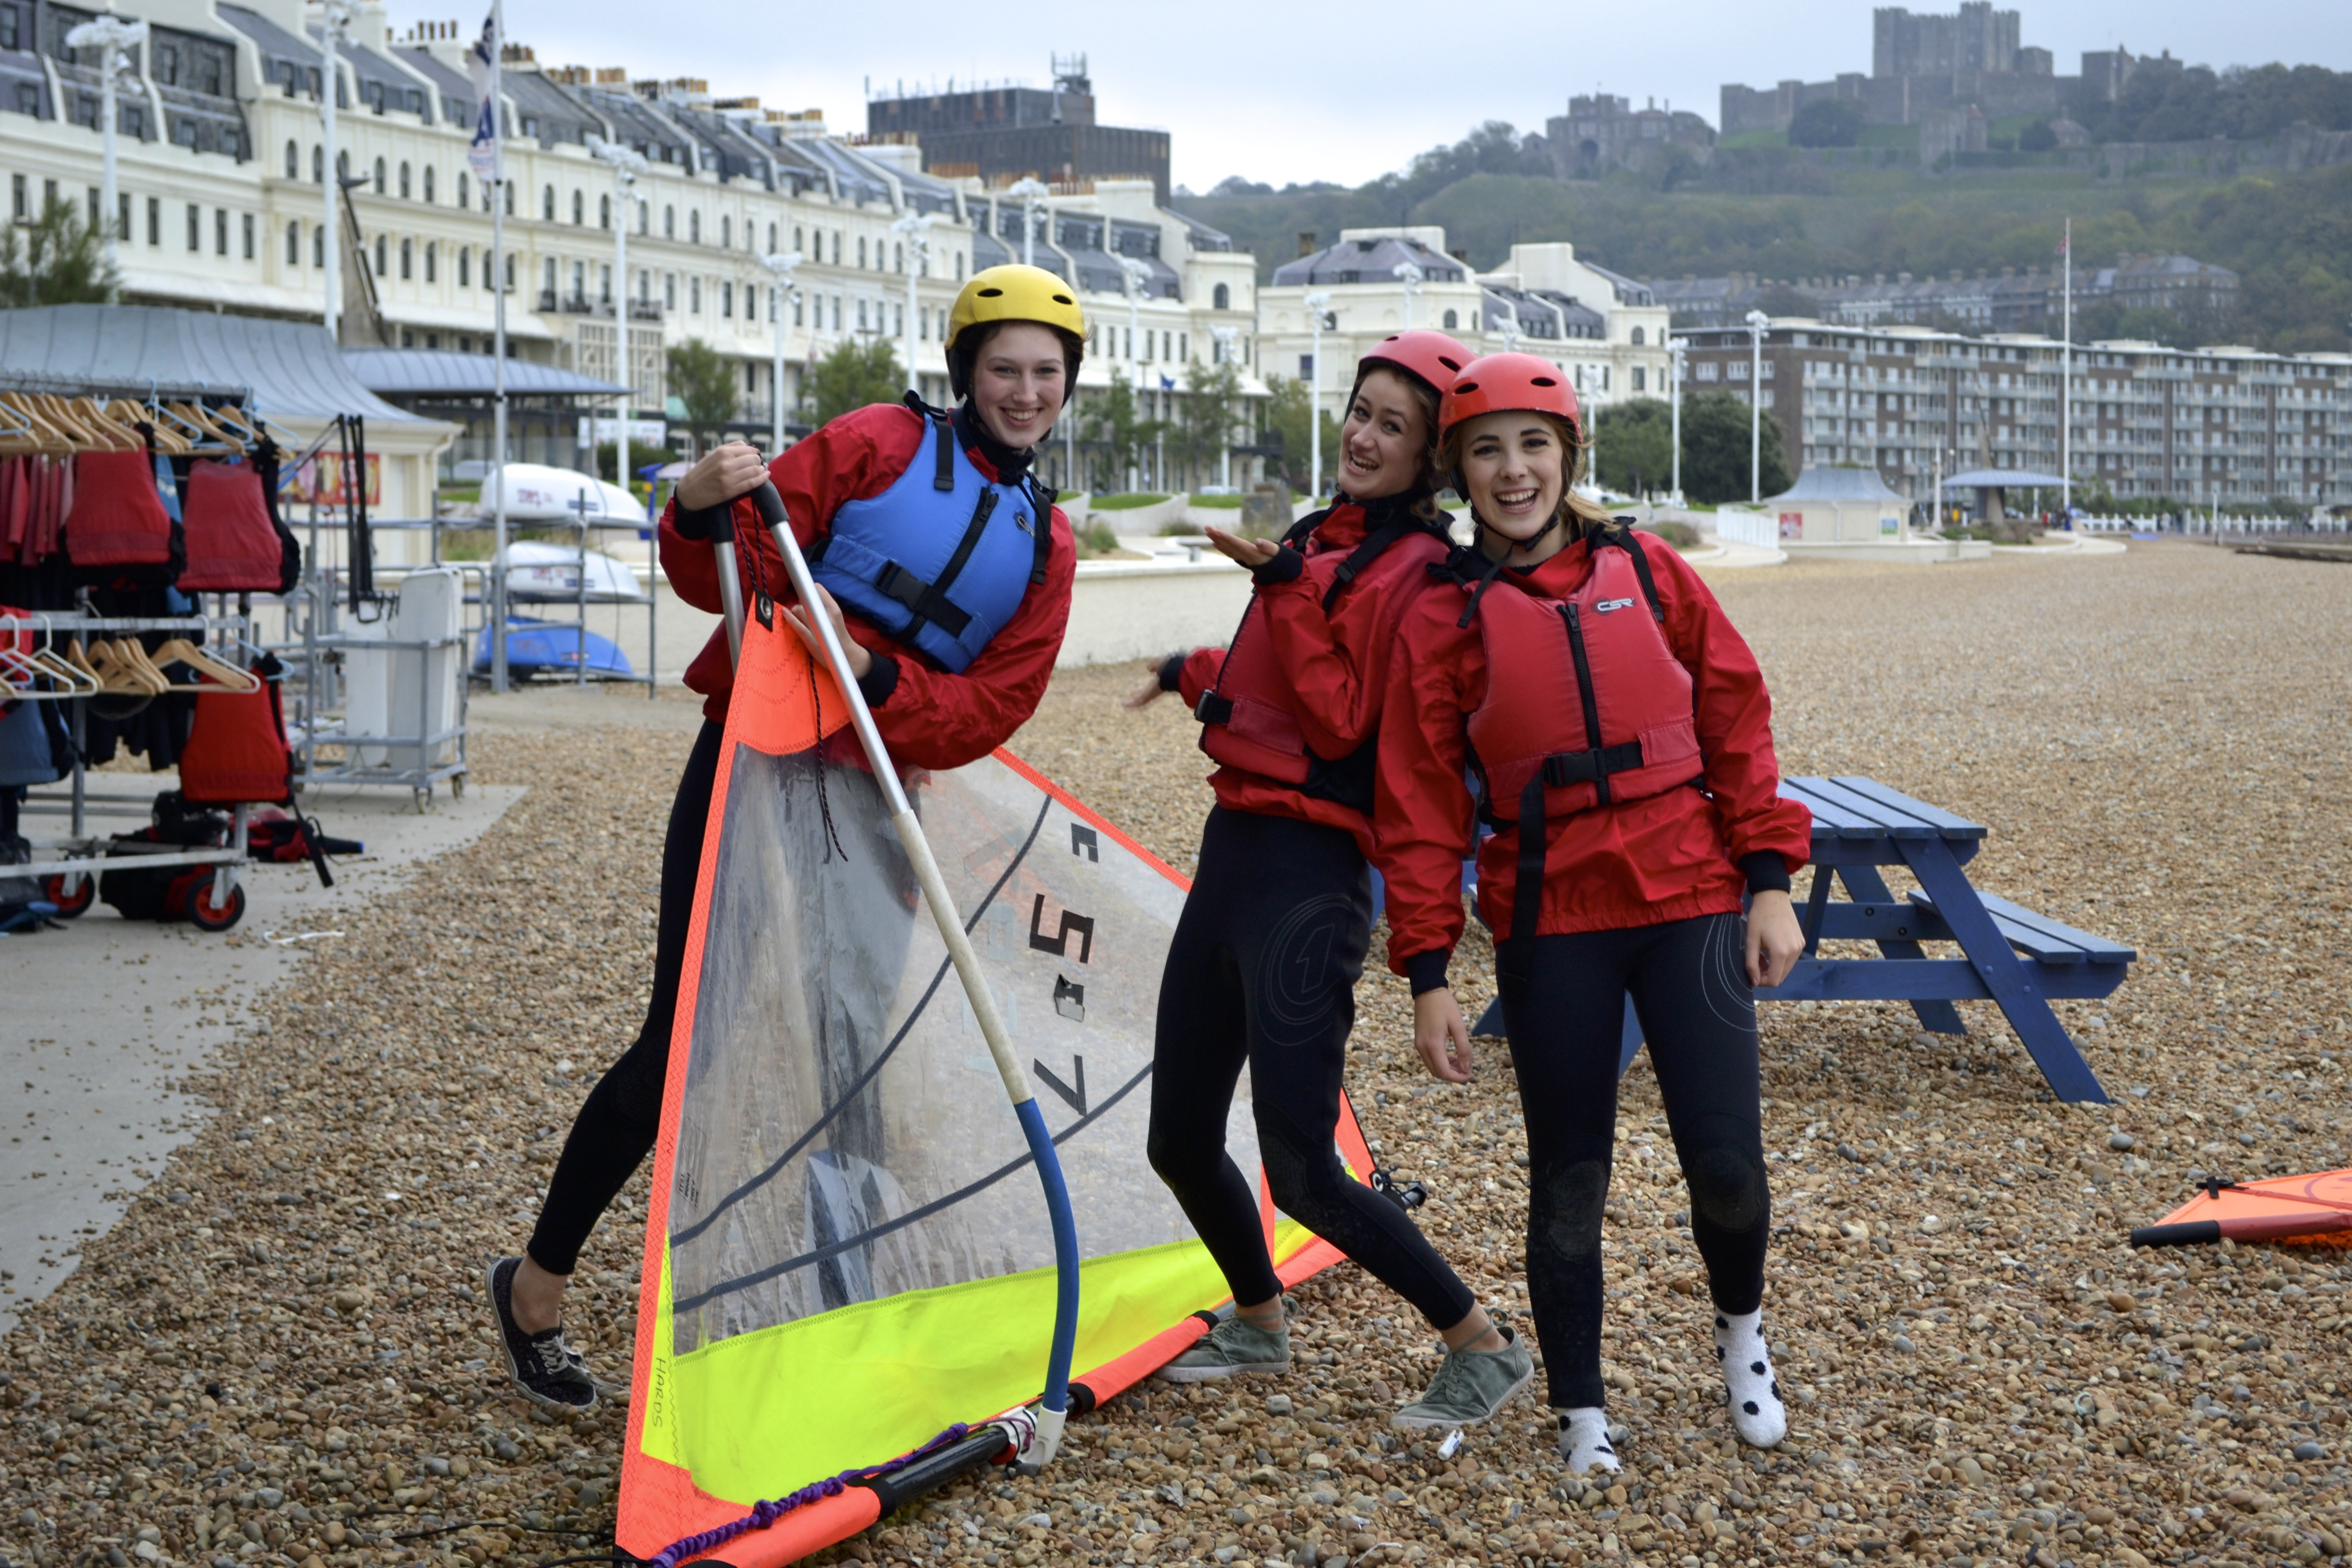 Youth windsurfing at Dover sea sport